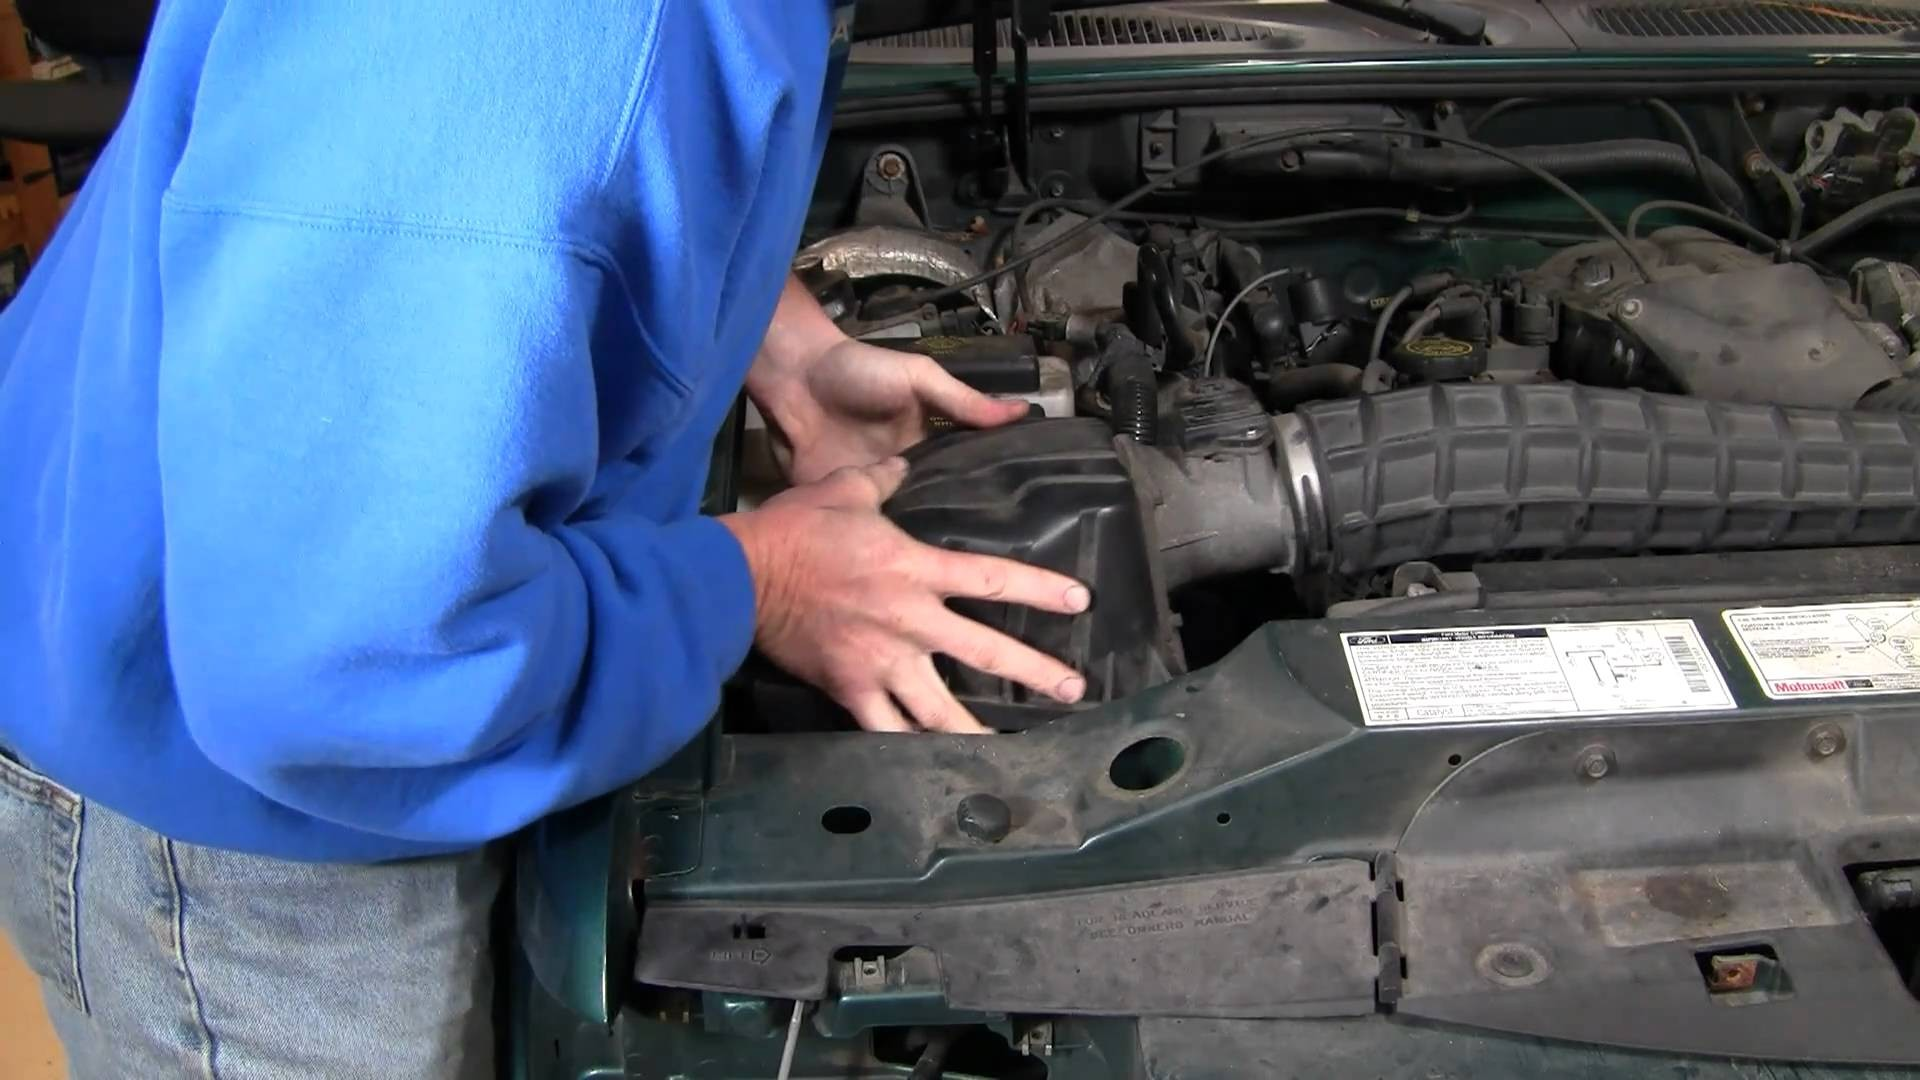 05 Explorer Engine Diagram Wiring Library 2005 Ford Sport Trac 2003 How To Install Replace Air Filter 4